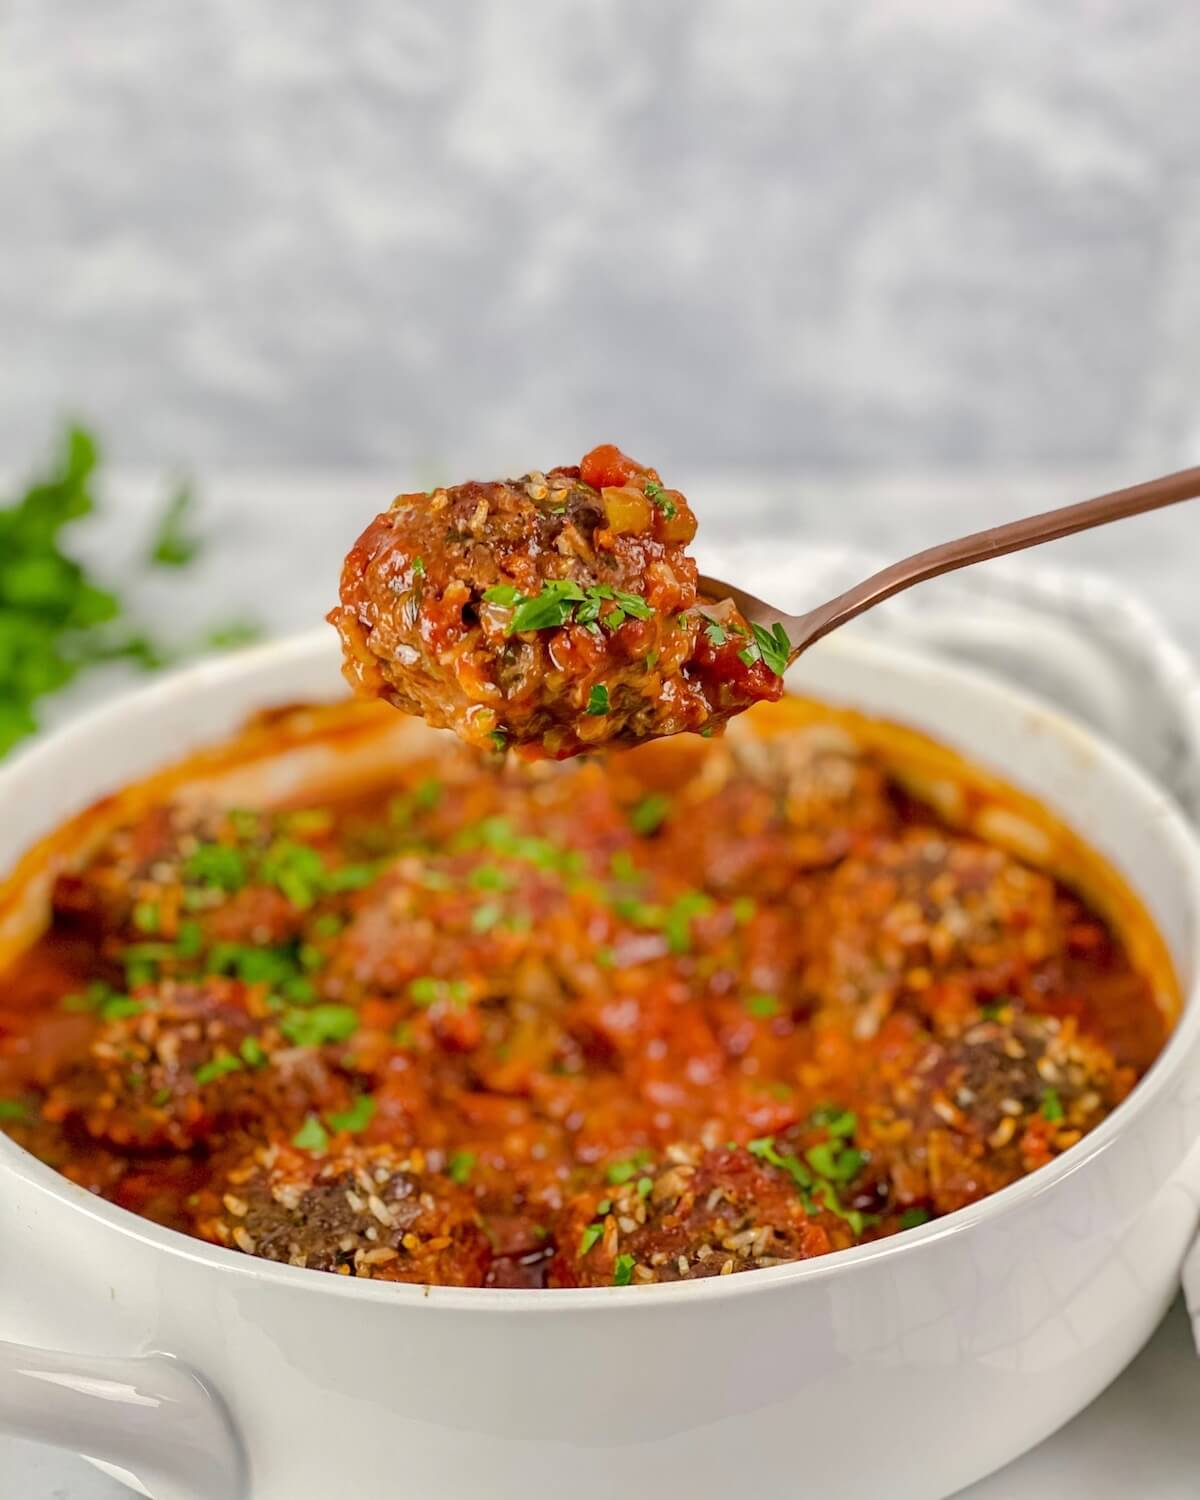 spoon with beef meatball on it with tomato sauce